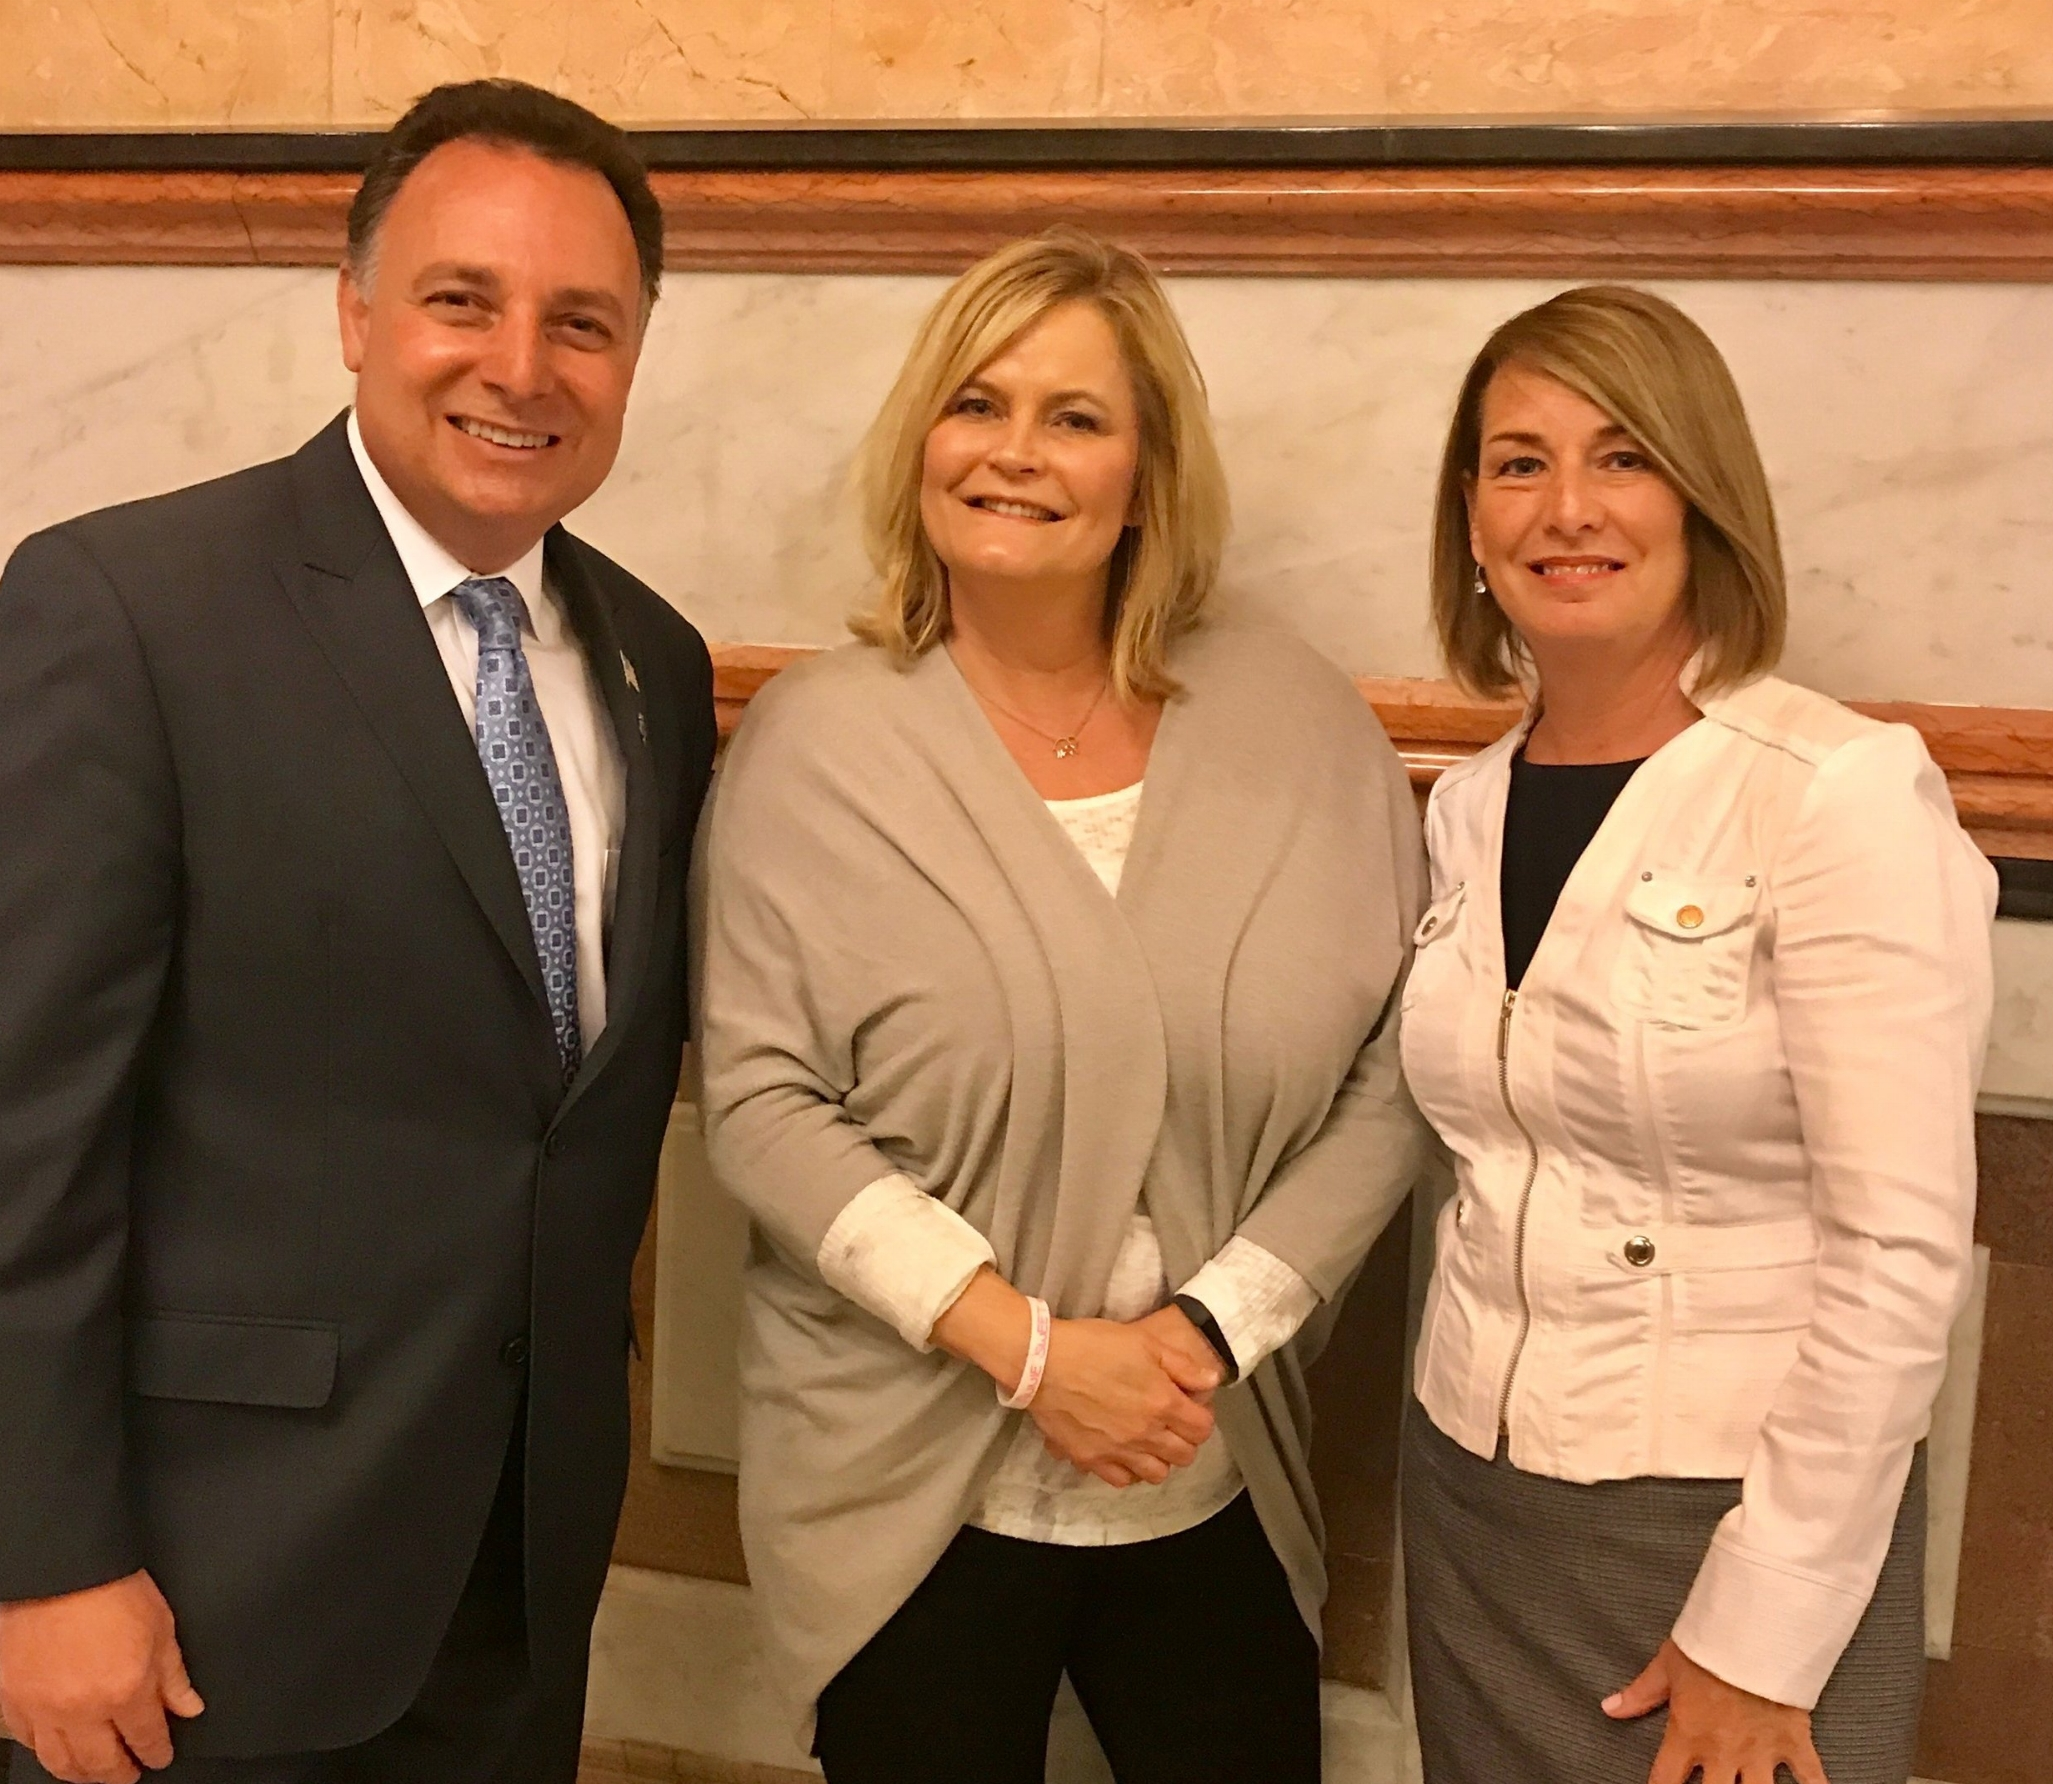 Pete DeCianni, Shelly LeGere and Representative Deb Conroy